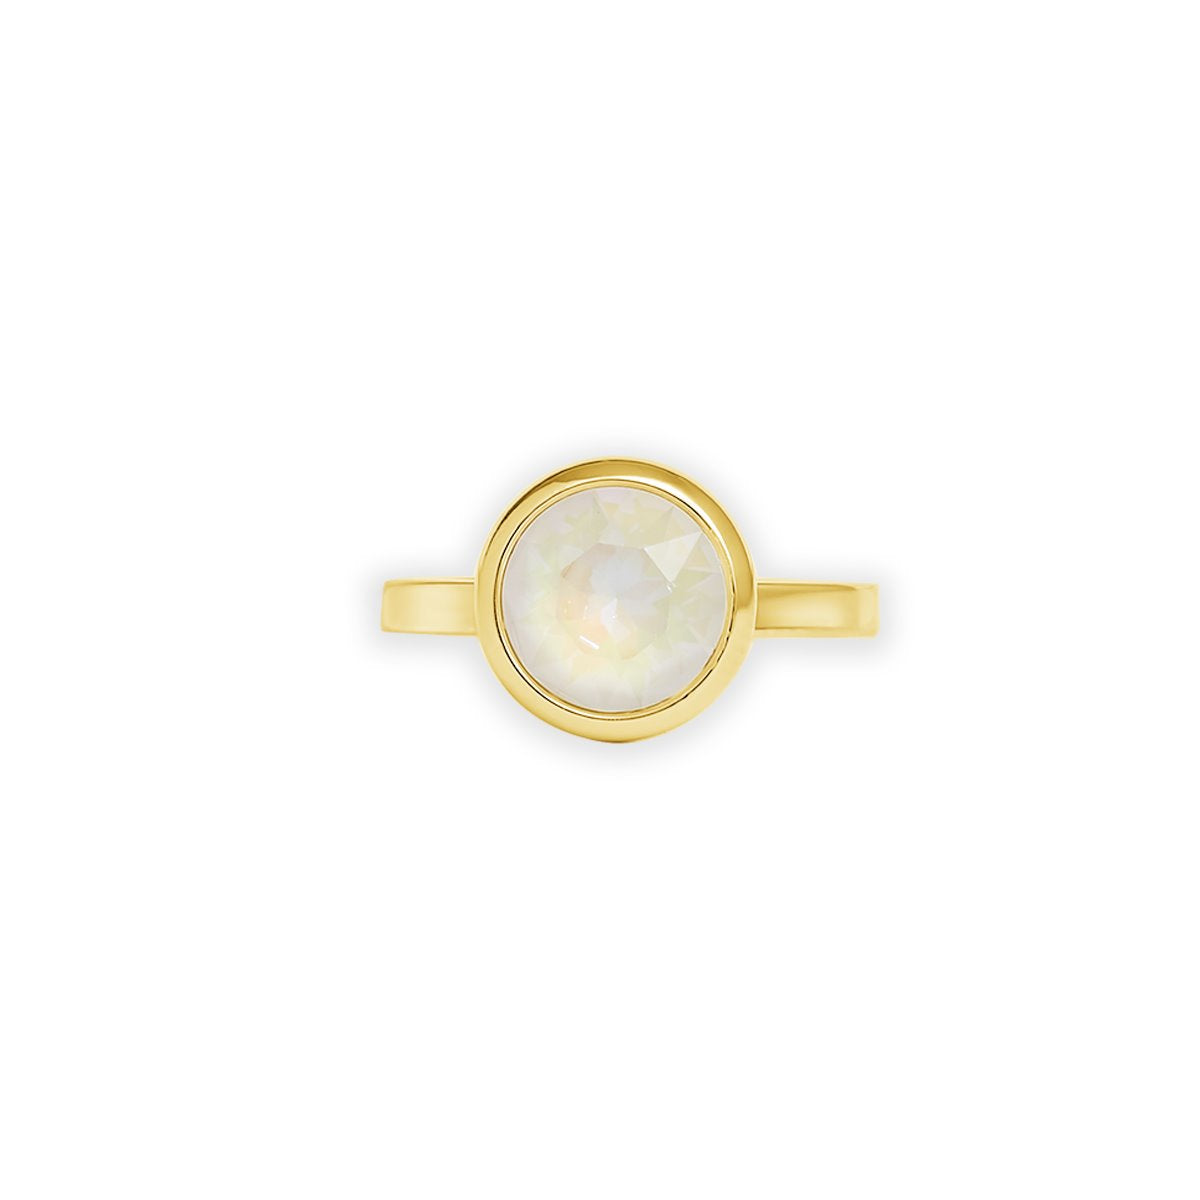 GRACE RING GOLD LIGHT GREY DELITE IMPERIAL FOREVER CRYSTALS